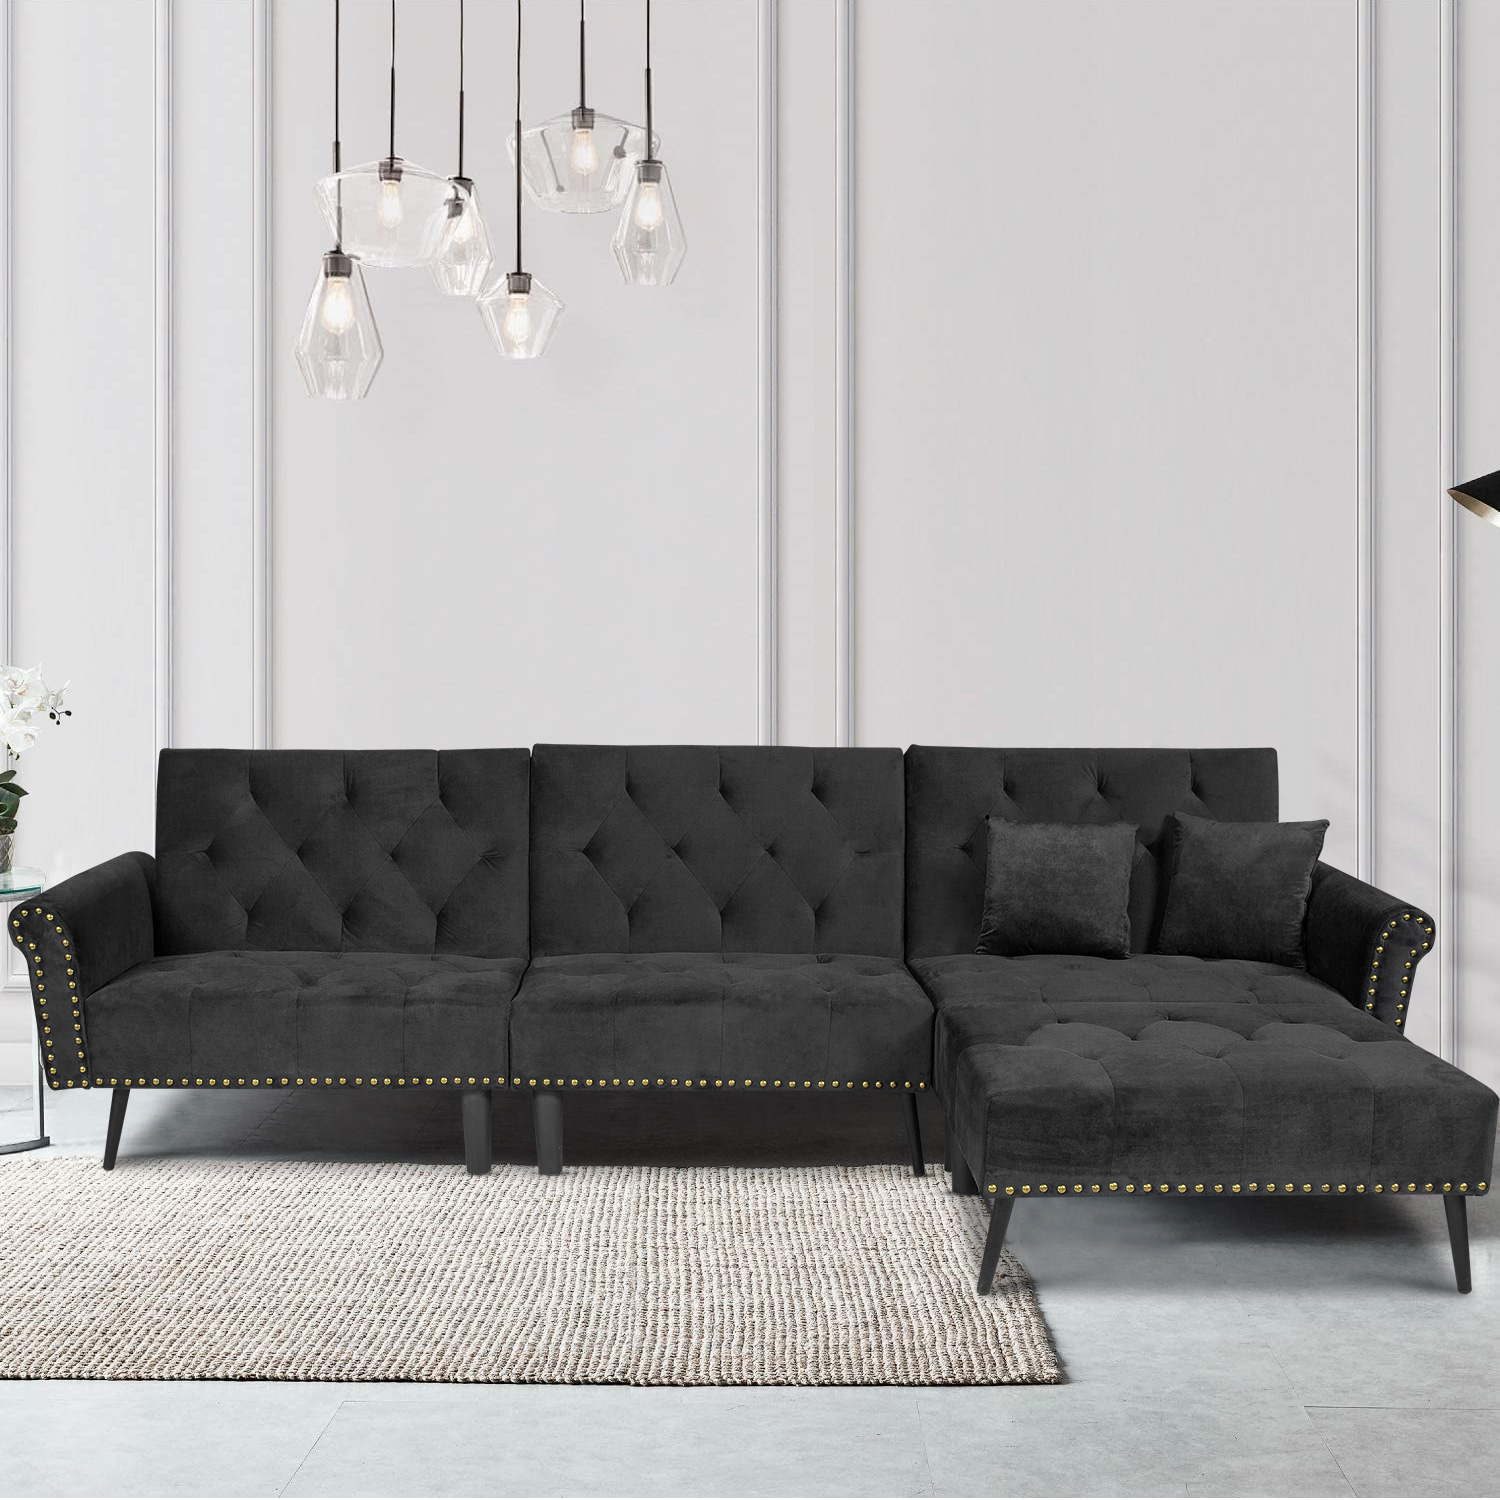 Segmart 2 Piece Contemporary Sectional Sofa Set Queen Sleeper Sofa With Pillows Tufted Sofa Bed With Chaise Modern Sofa Bed Couches And Sofas Sleeper With Oak Legs For Living Room Office B1013